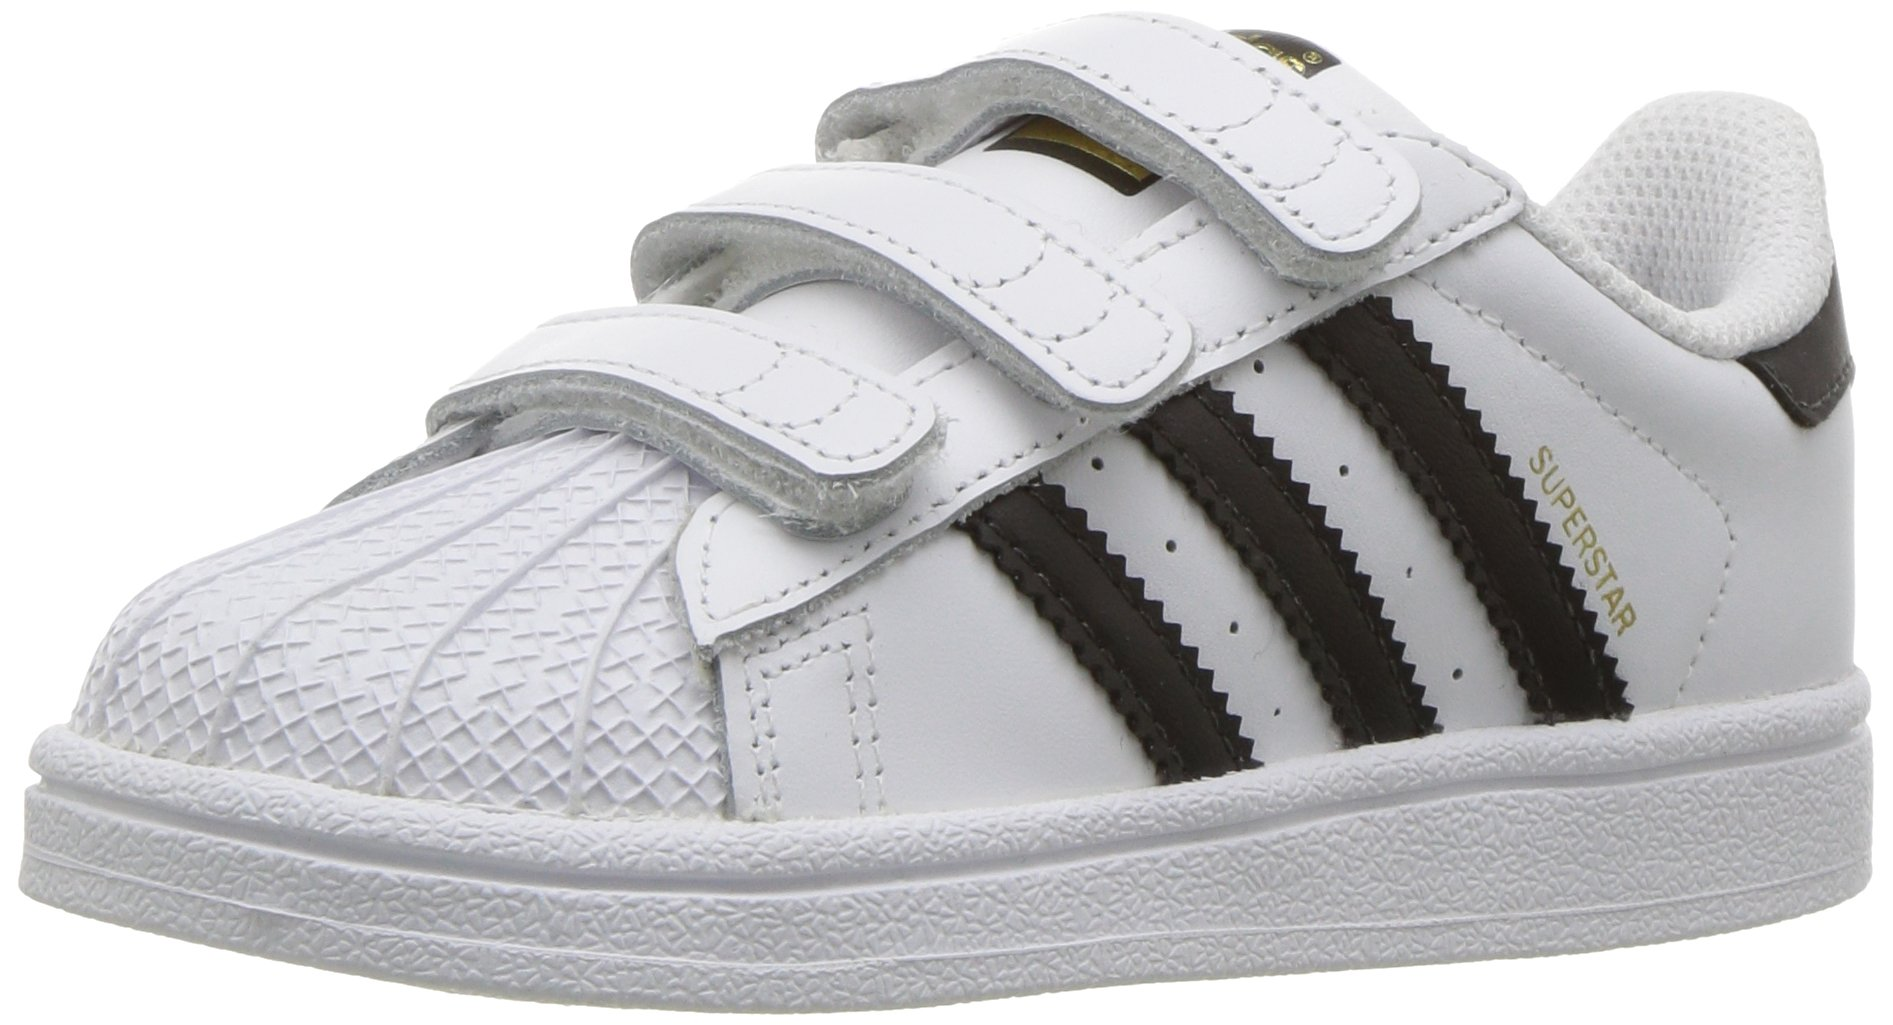 new product cdac3 6a1f4 Galleon - Adidas Originals Baby Superstar CF I Running Shoe, Core Black White,  5 M US Toddler